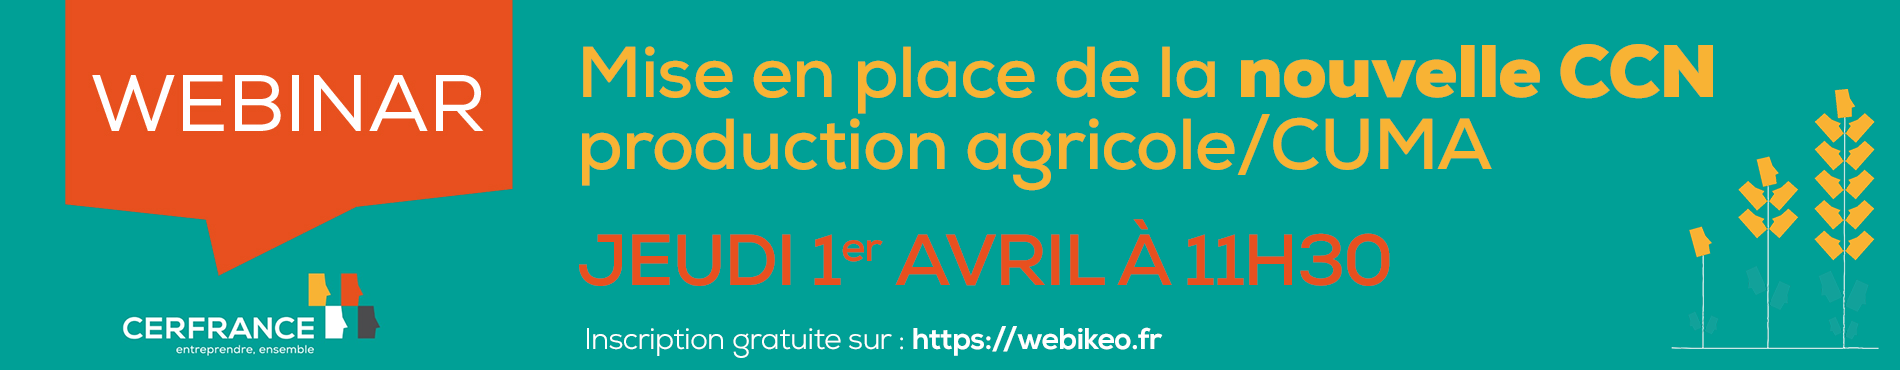 webinar-convention-collective-nationale-agricole